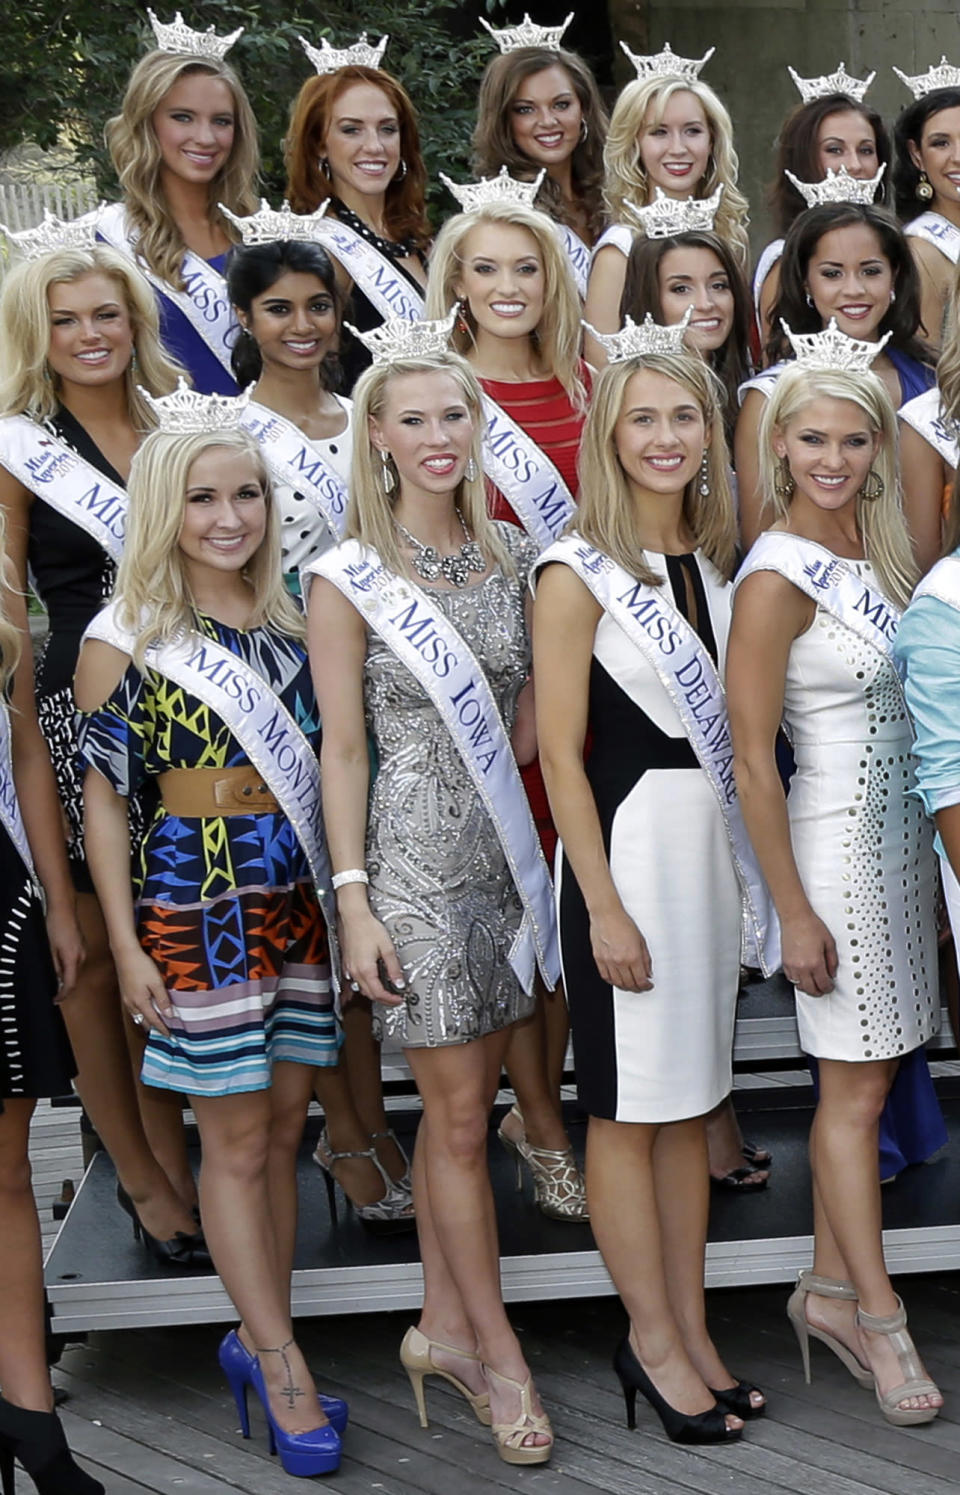 In this Tuesday, Sept. 3, 2013, photograph, Miss Iowa, Nicole Kelly, front row, second from left, stands with other Miss America contestants during arrival ceremonies in Atlantic City, N.J. Kelly was born without part of her left forearm and says she has never let her disability get in the way of doing what she wanted. (AP Photo/Mel Evans)